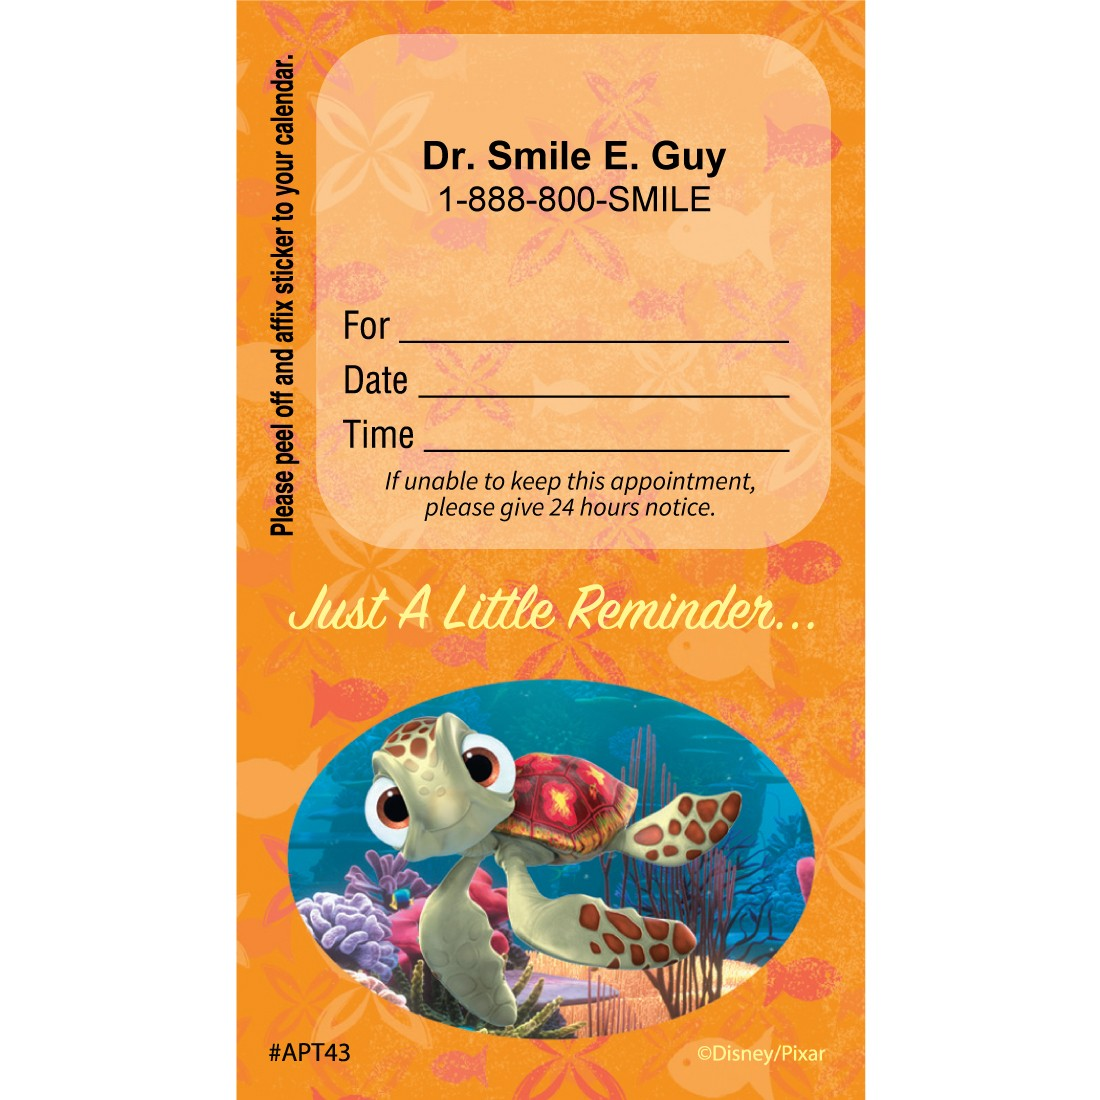 Custom Finding Nemo Reminder Appointment Cards [image]